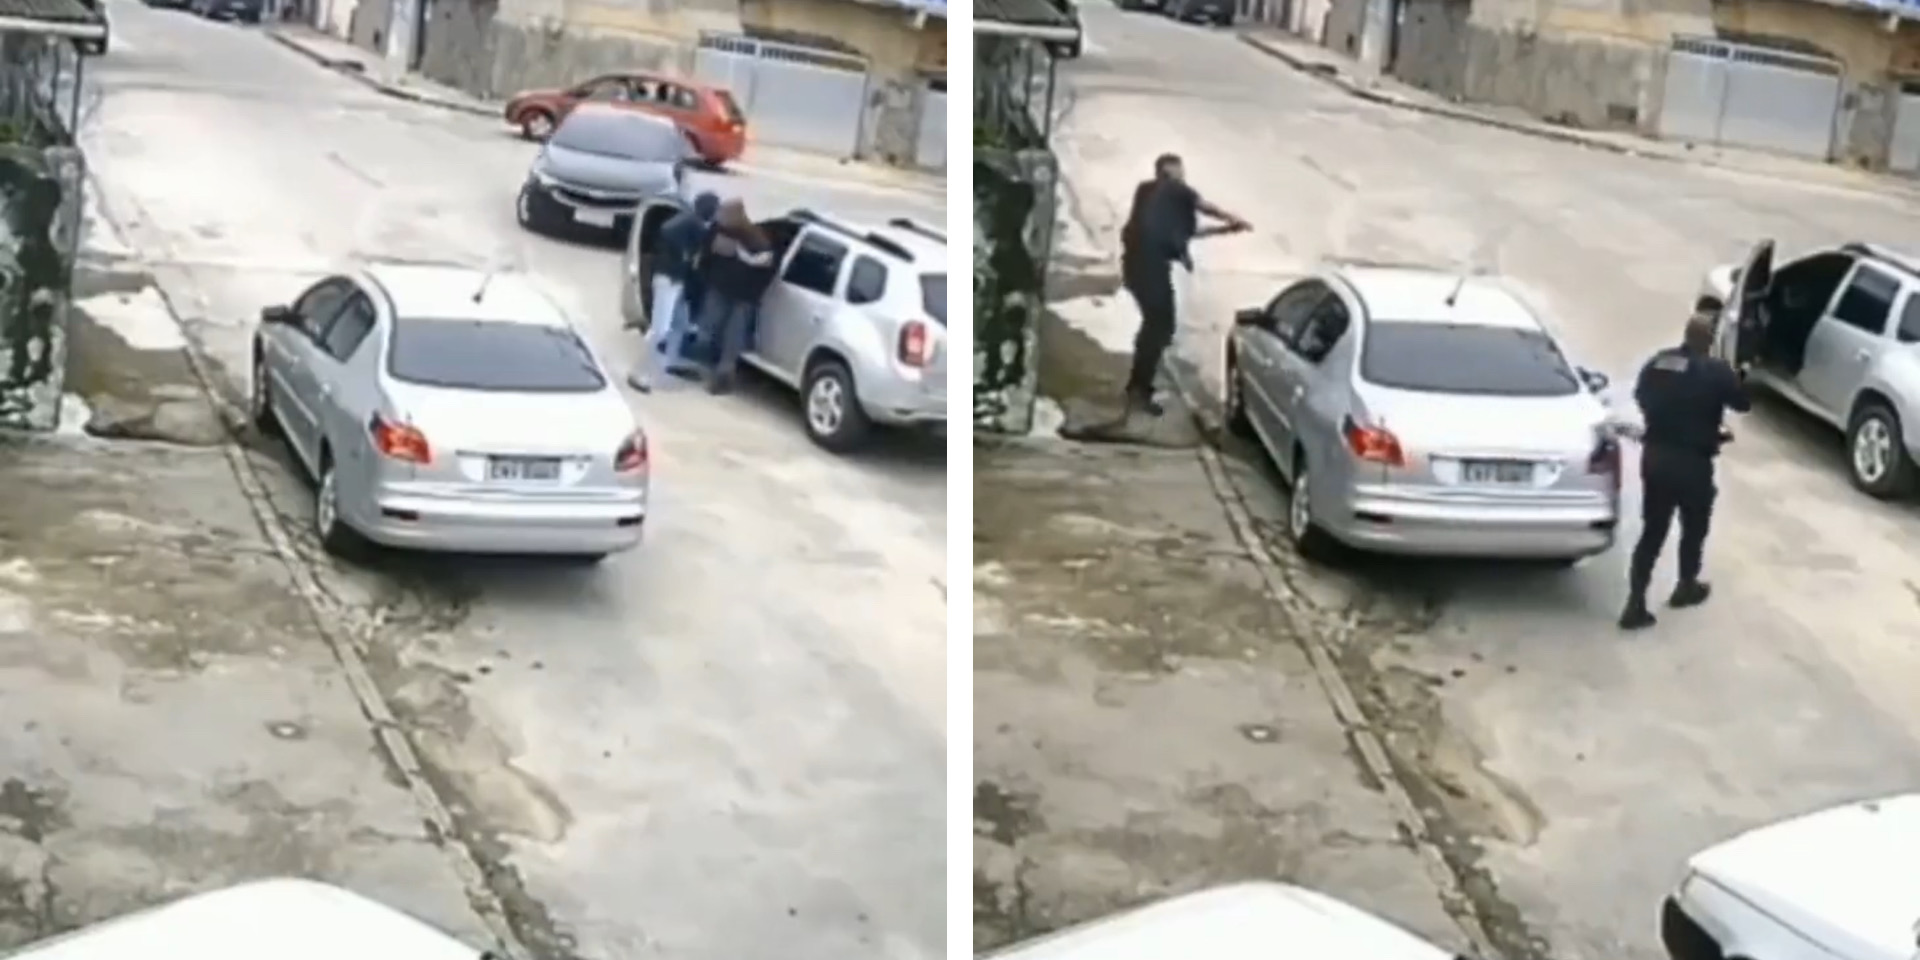 Car thieves arrested after failing to drive away an SUV they snatched [Video]